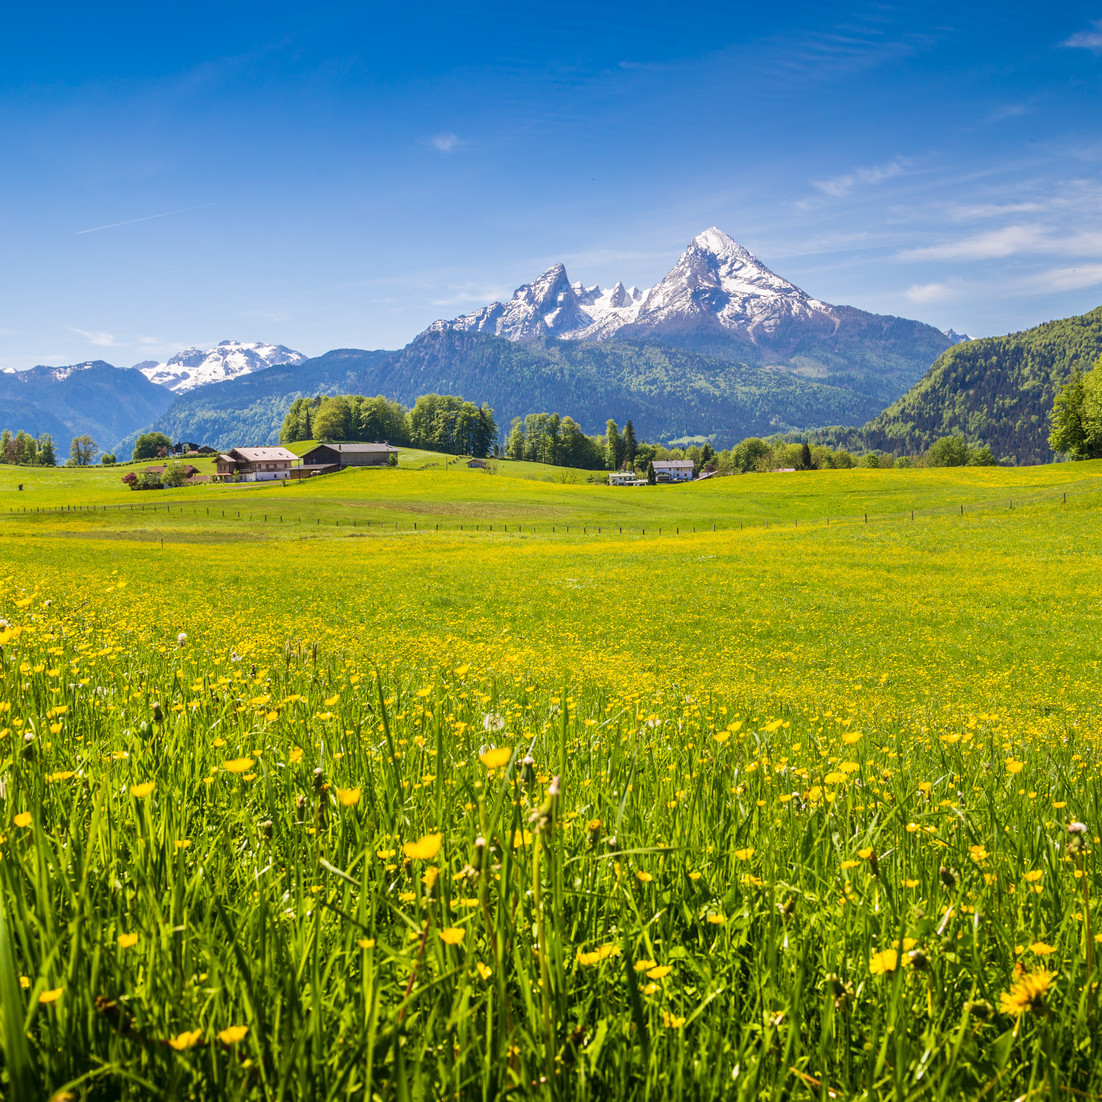 Idyllic landscape in the Alps with green meadows and flowers